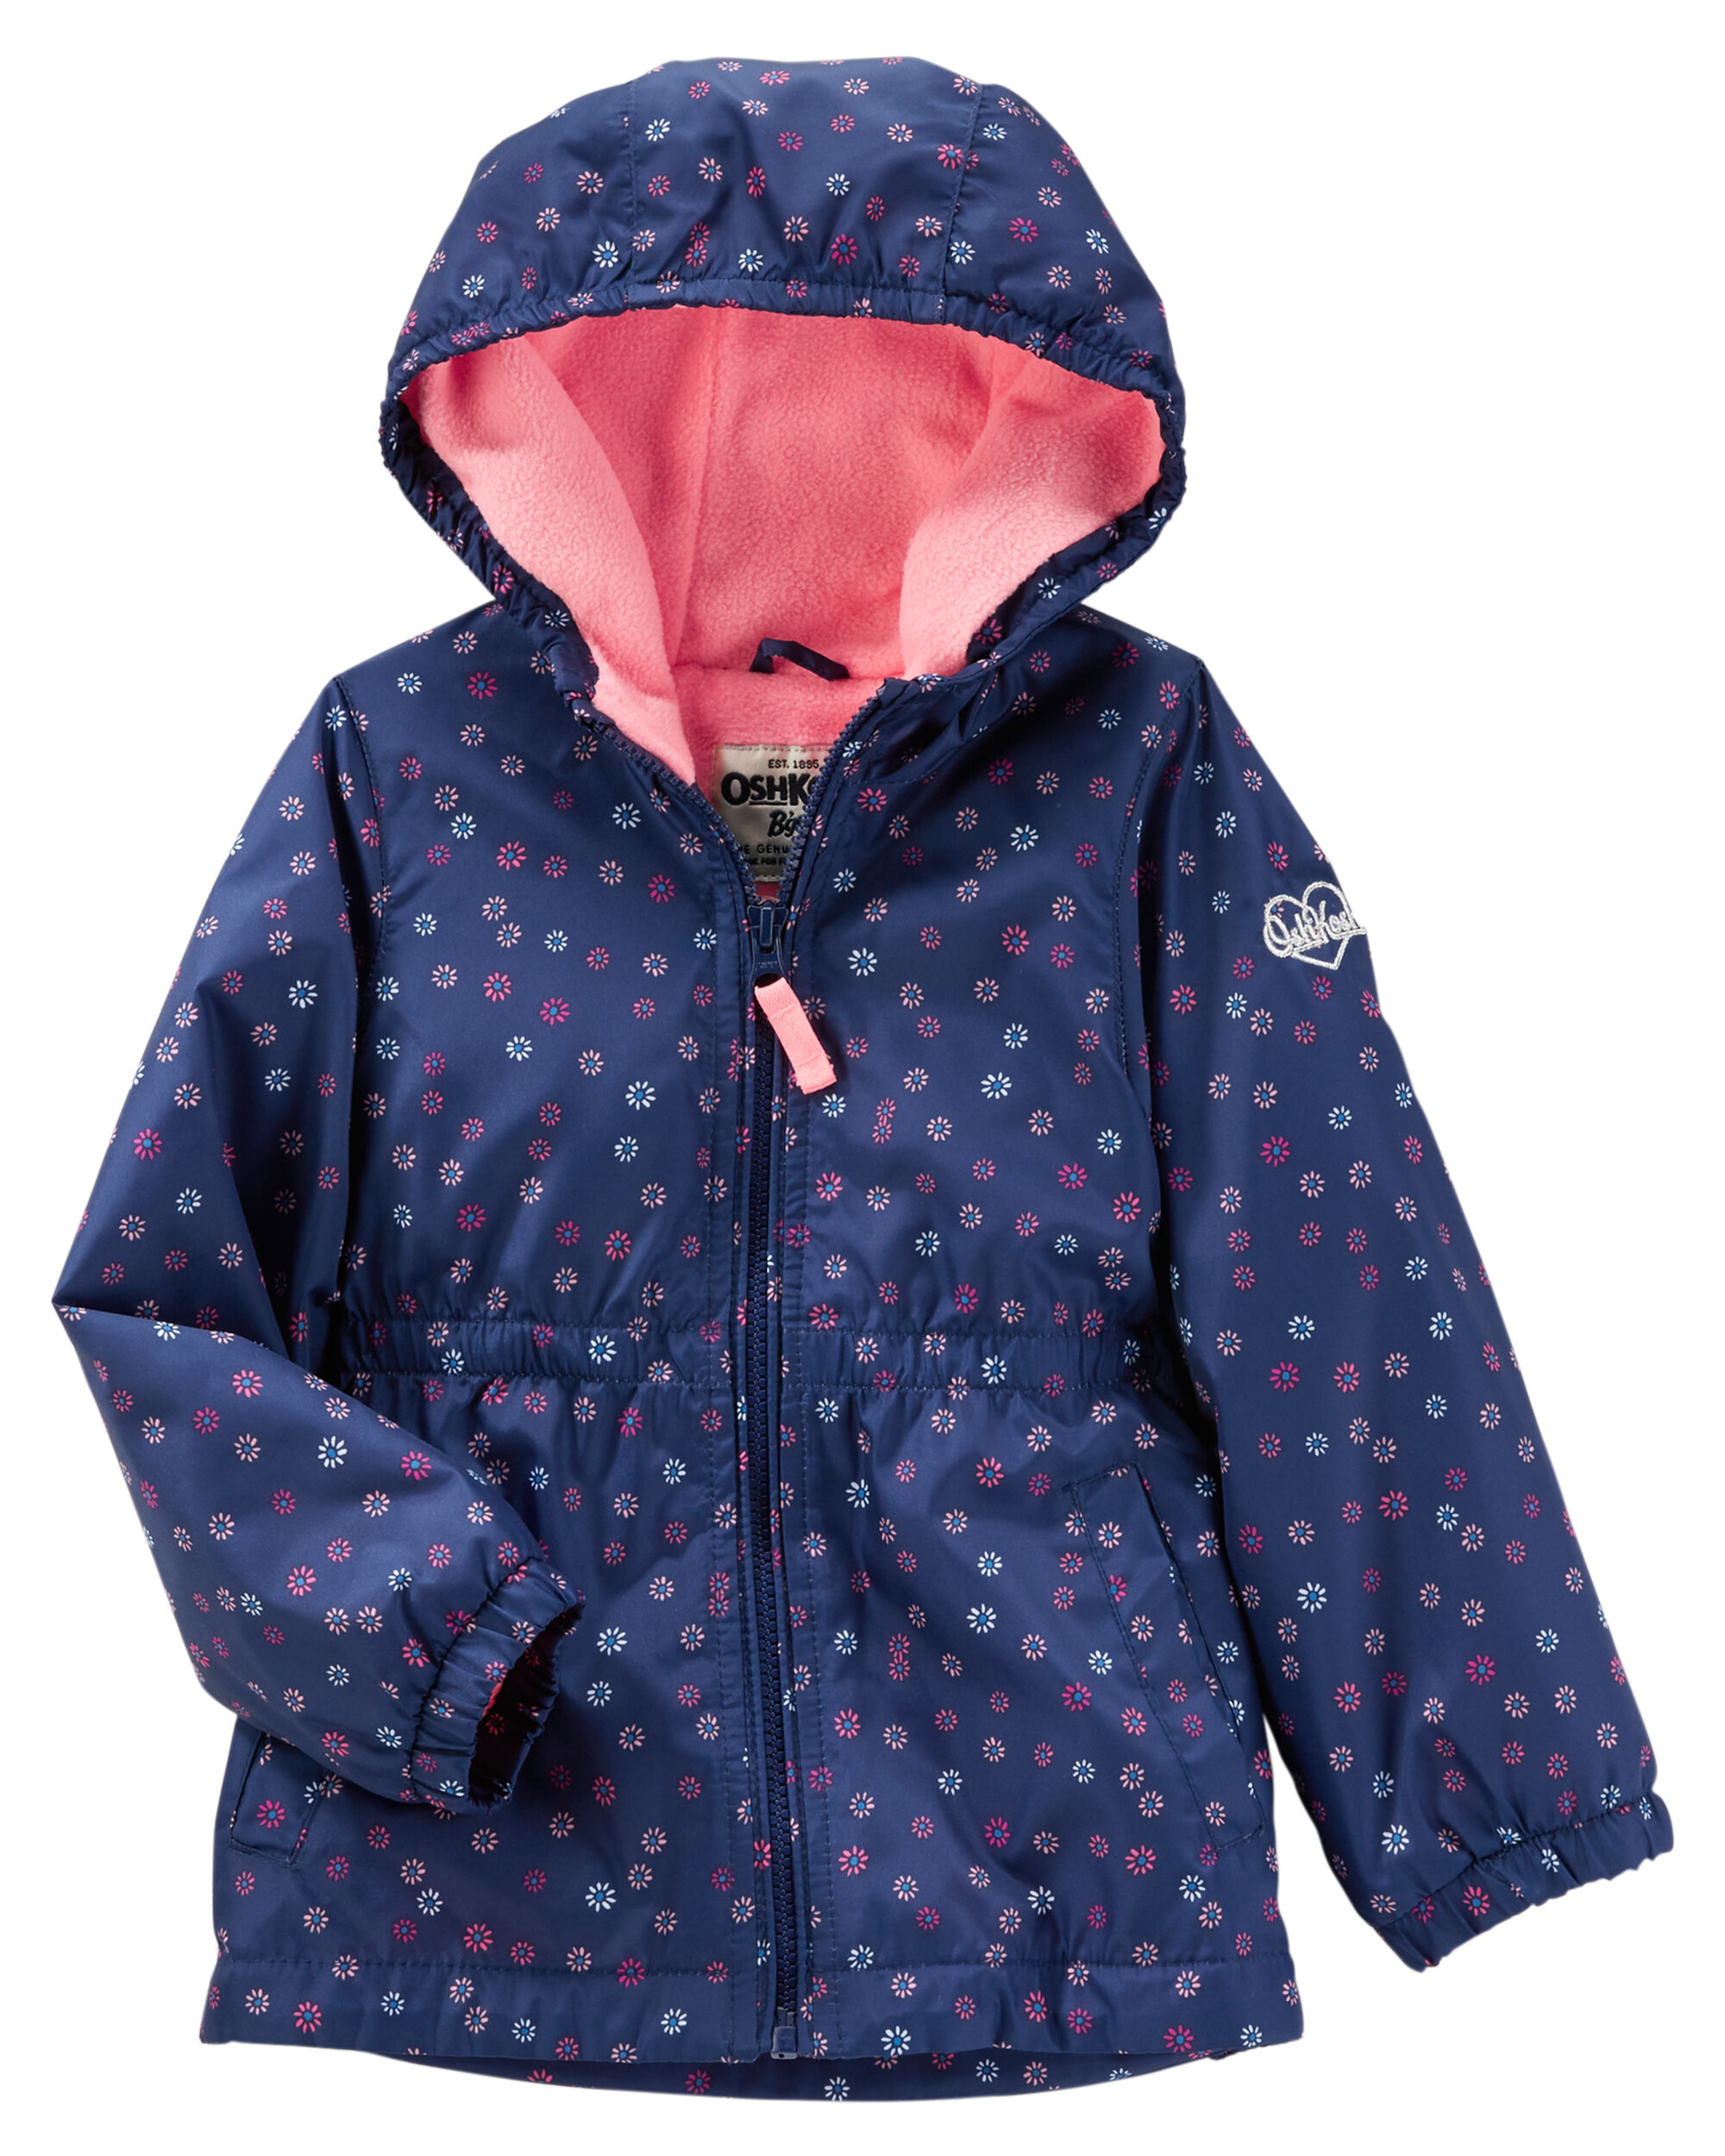 Carter/'s Infant Girls Pink Fleece Lined Midweight Jacket Size 12M 18M 24M